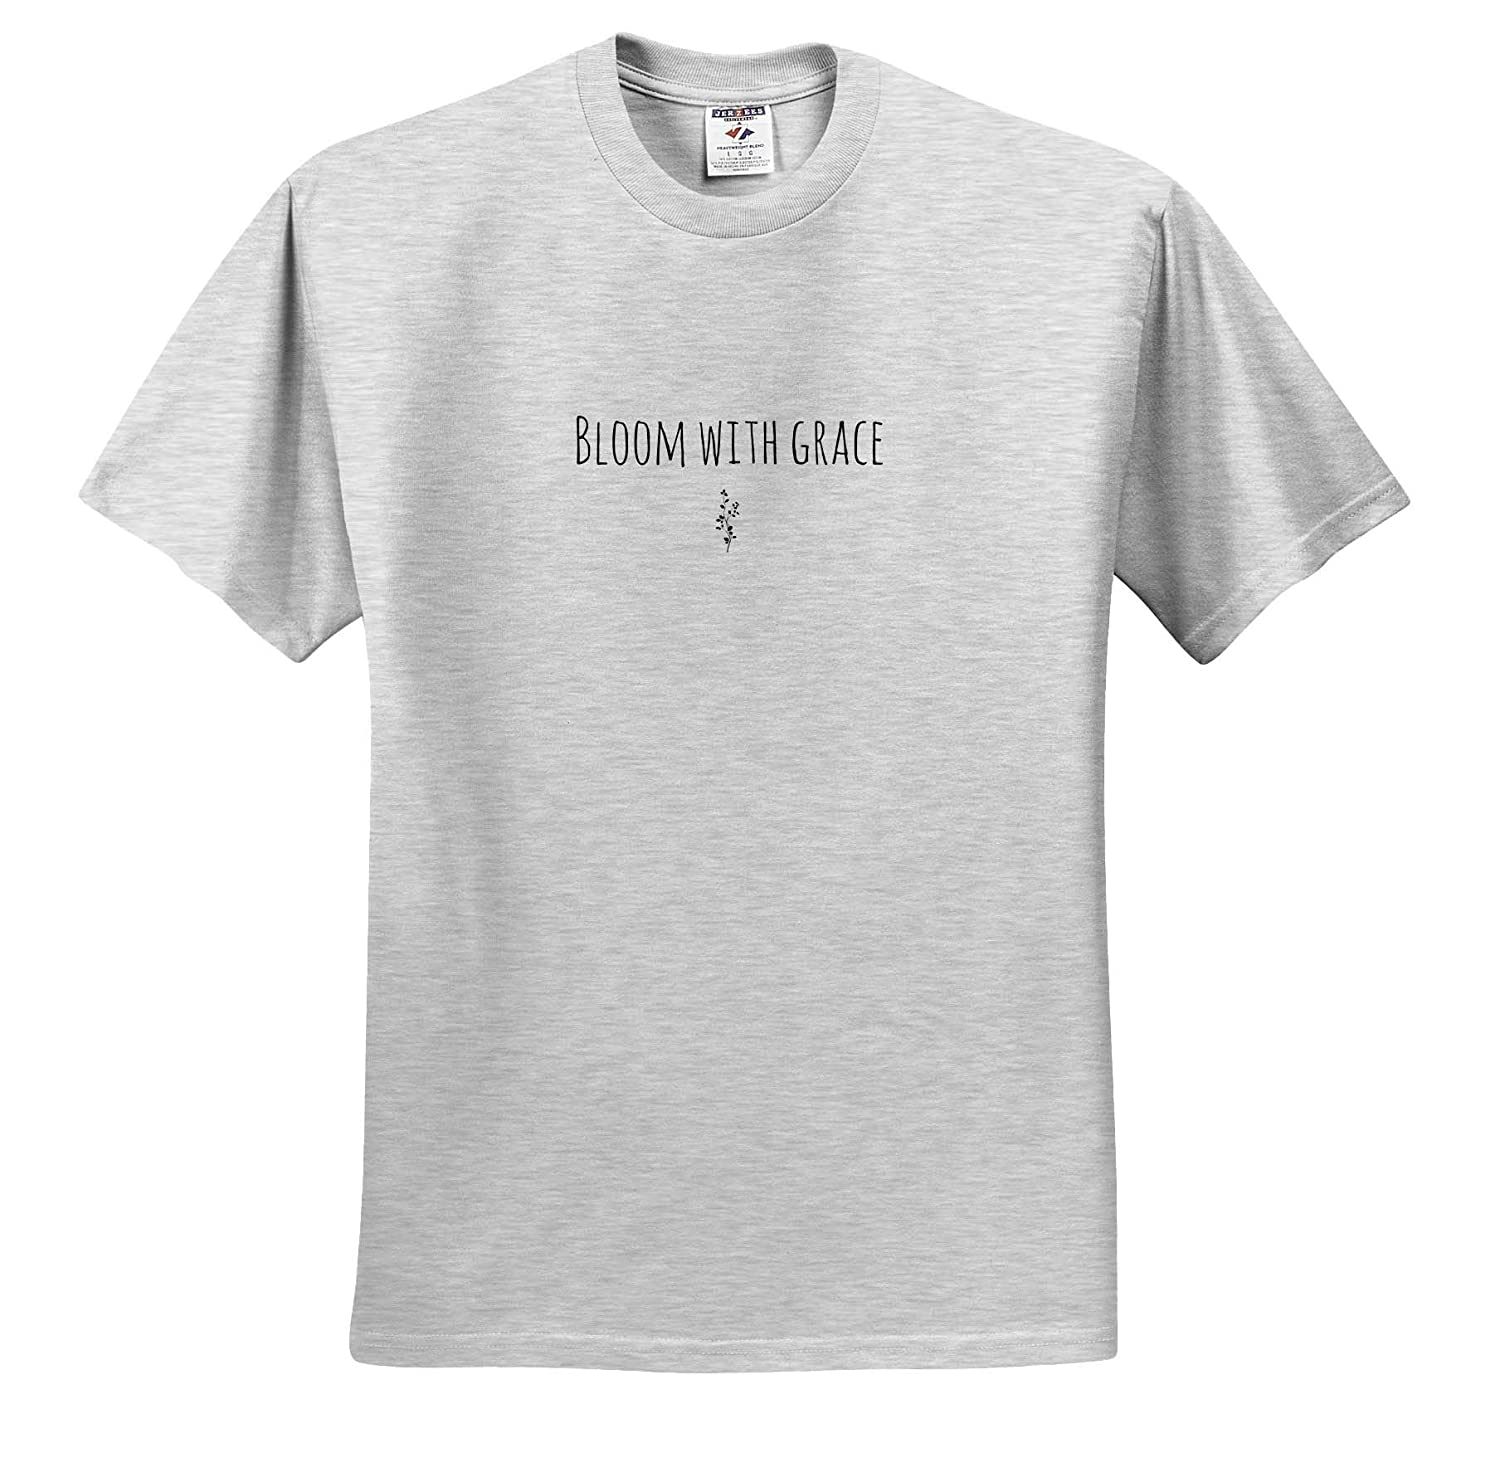 ts/_316936 3dRose Gabriella-Quote Image of Bloom with Grace Quote Adult T-Shirt XL